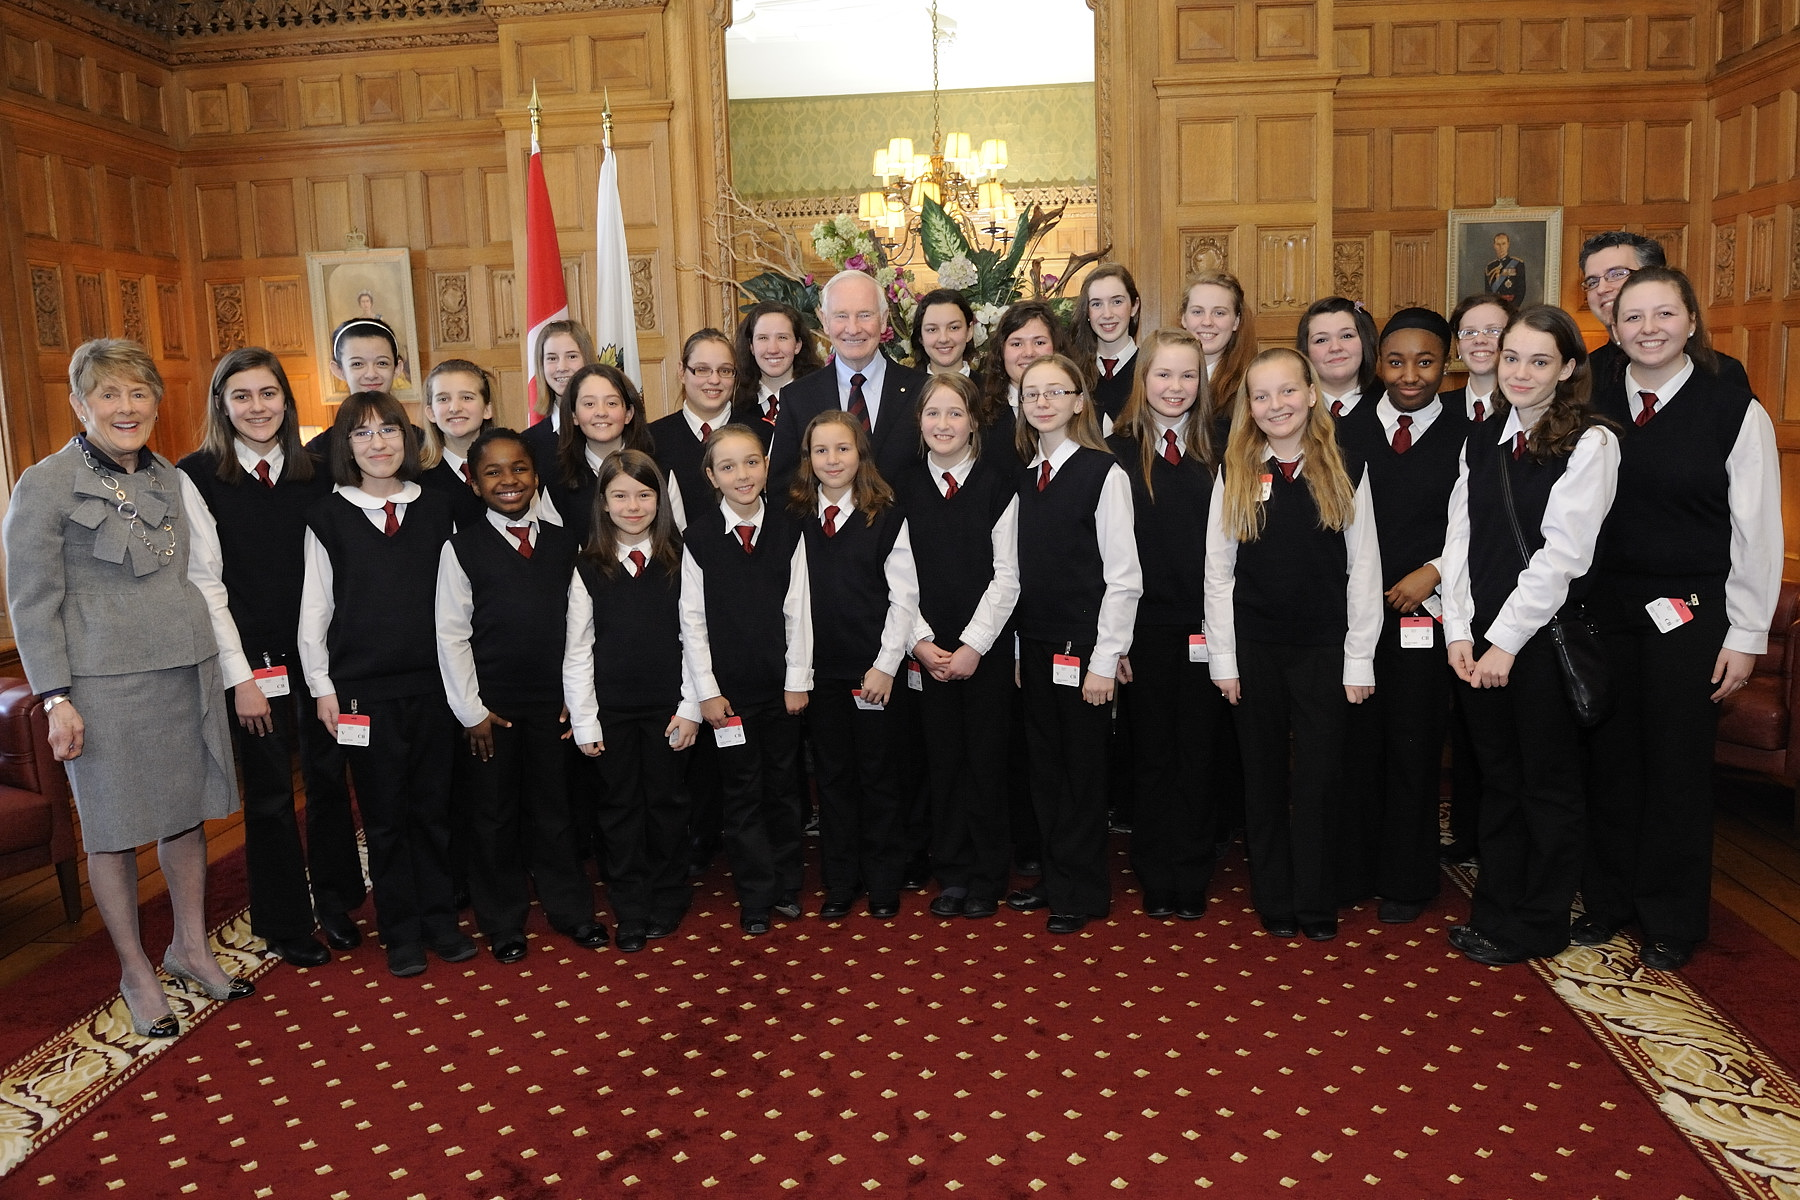 During the ceremony, Christ Church Cathedral Girls' Choir sang the National and the Royal anthems.